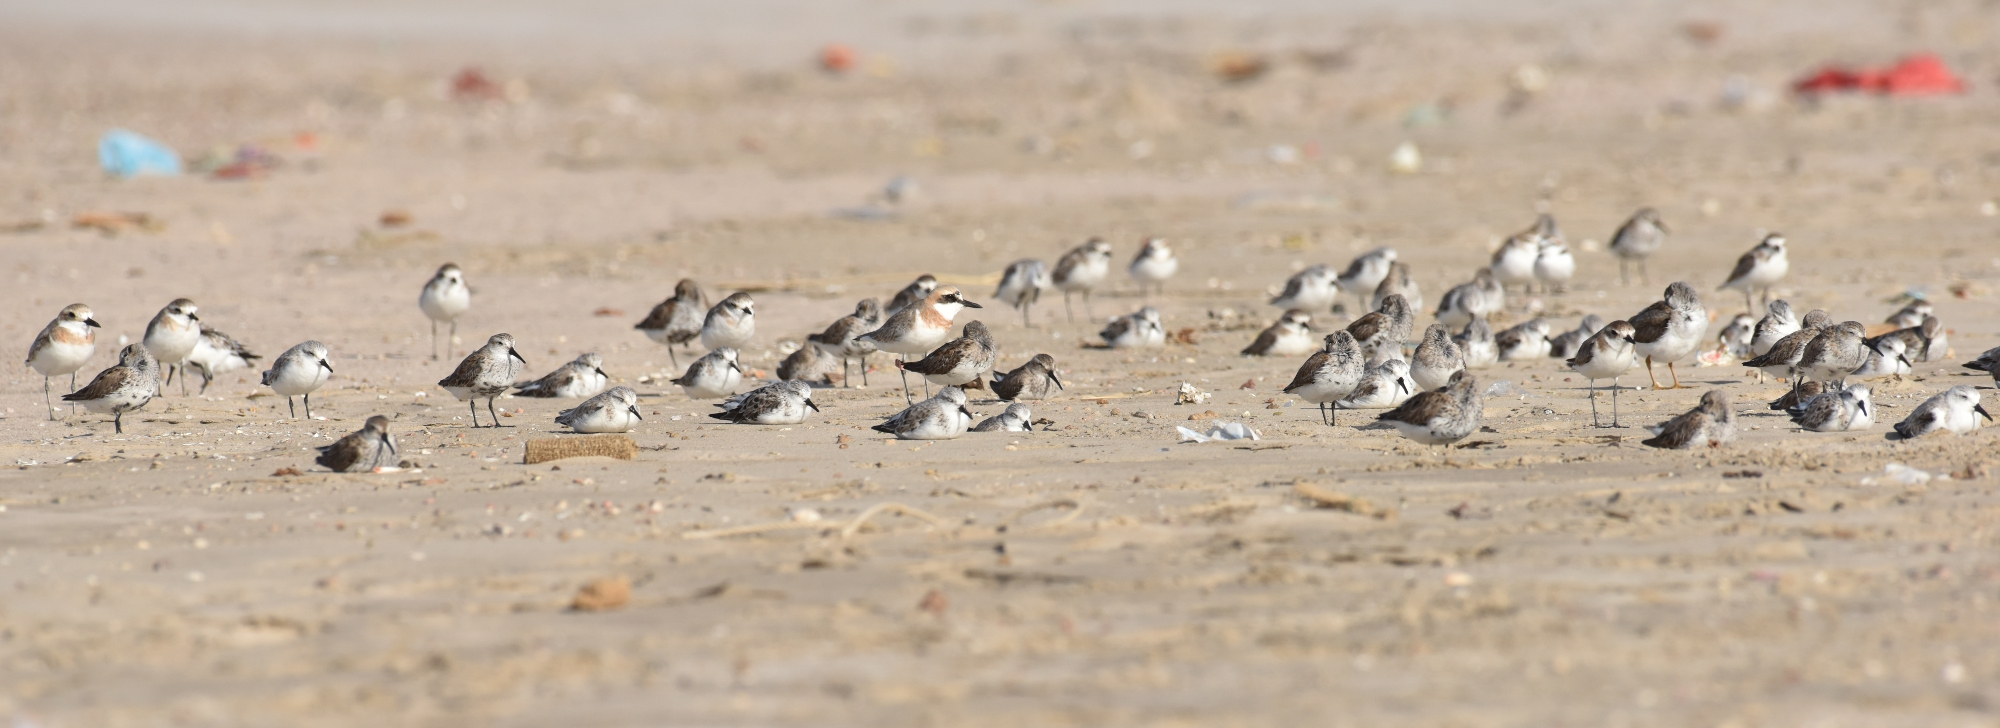 Greater Sand Plover - cropped (Jaysukh Parekh Suman)